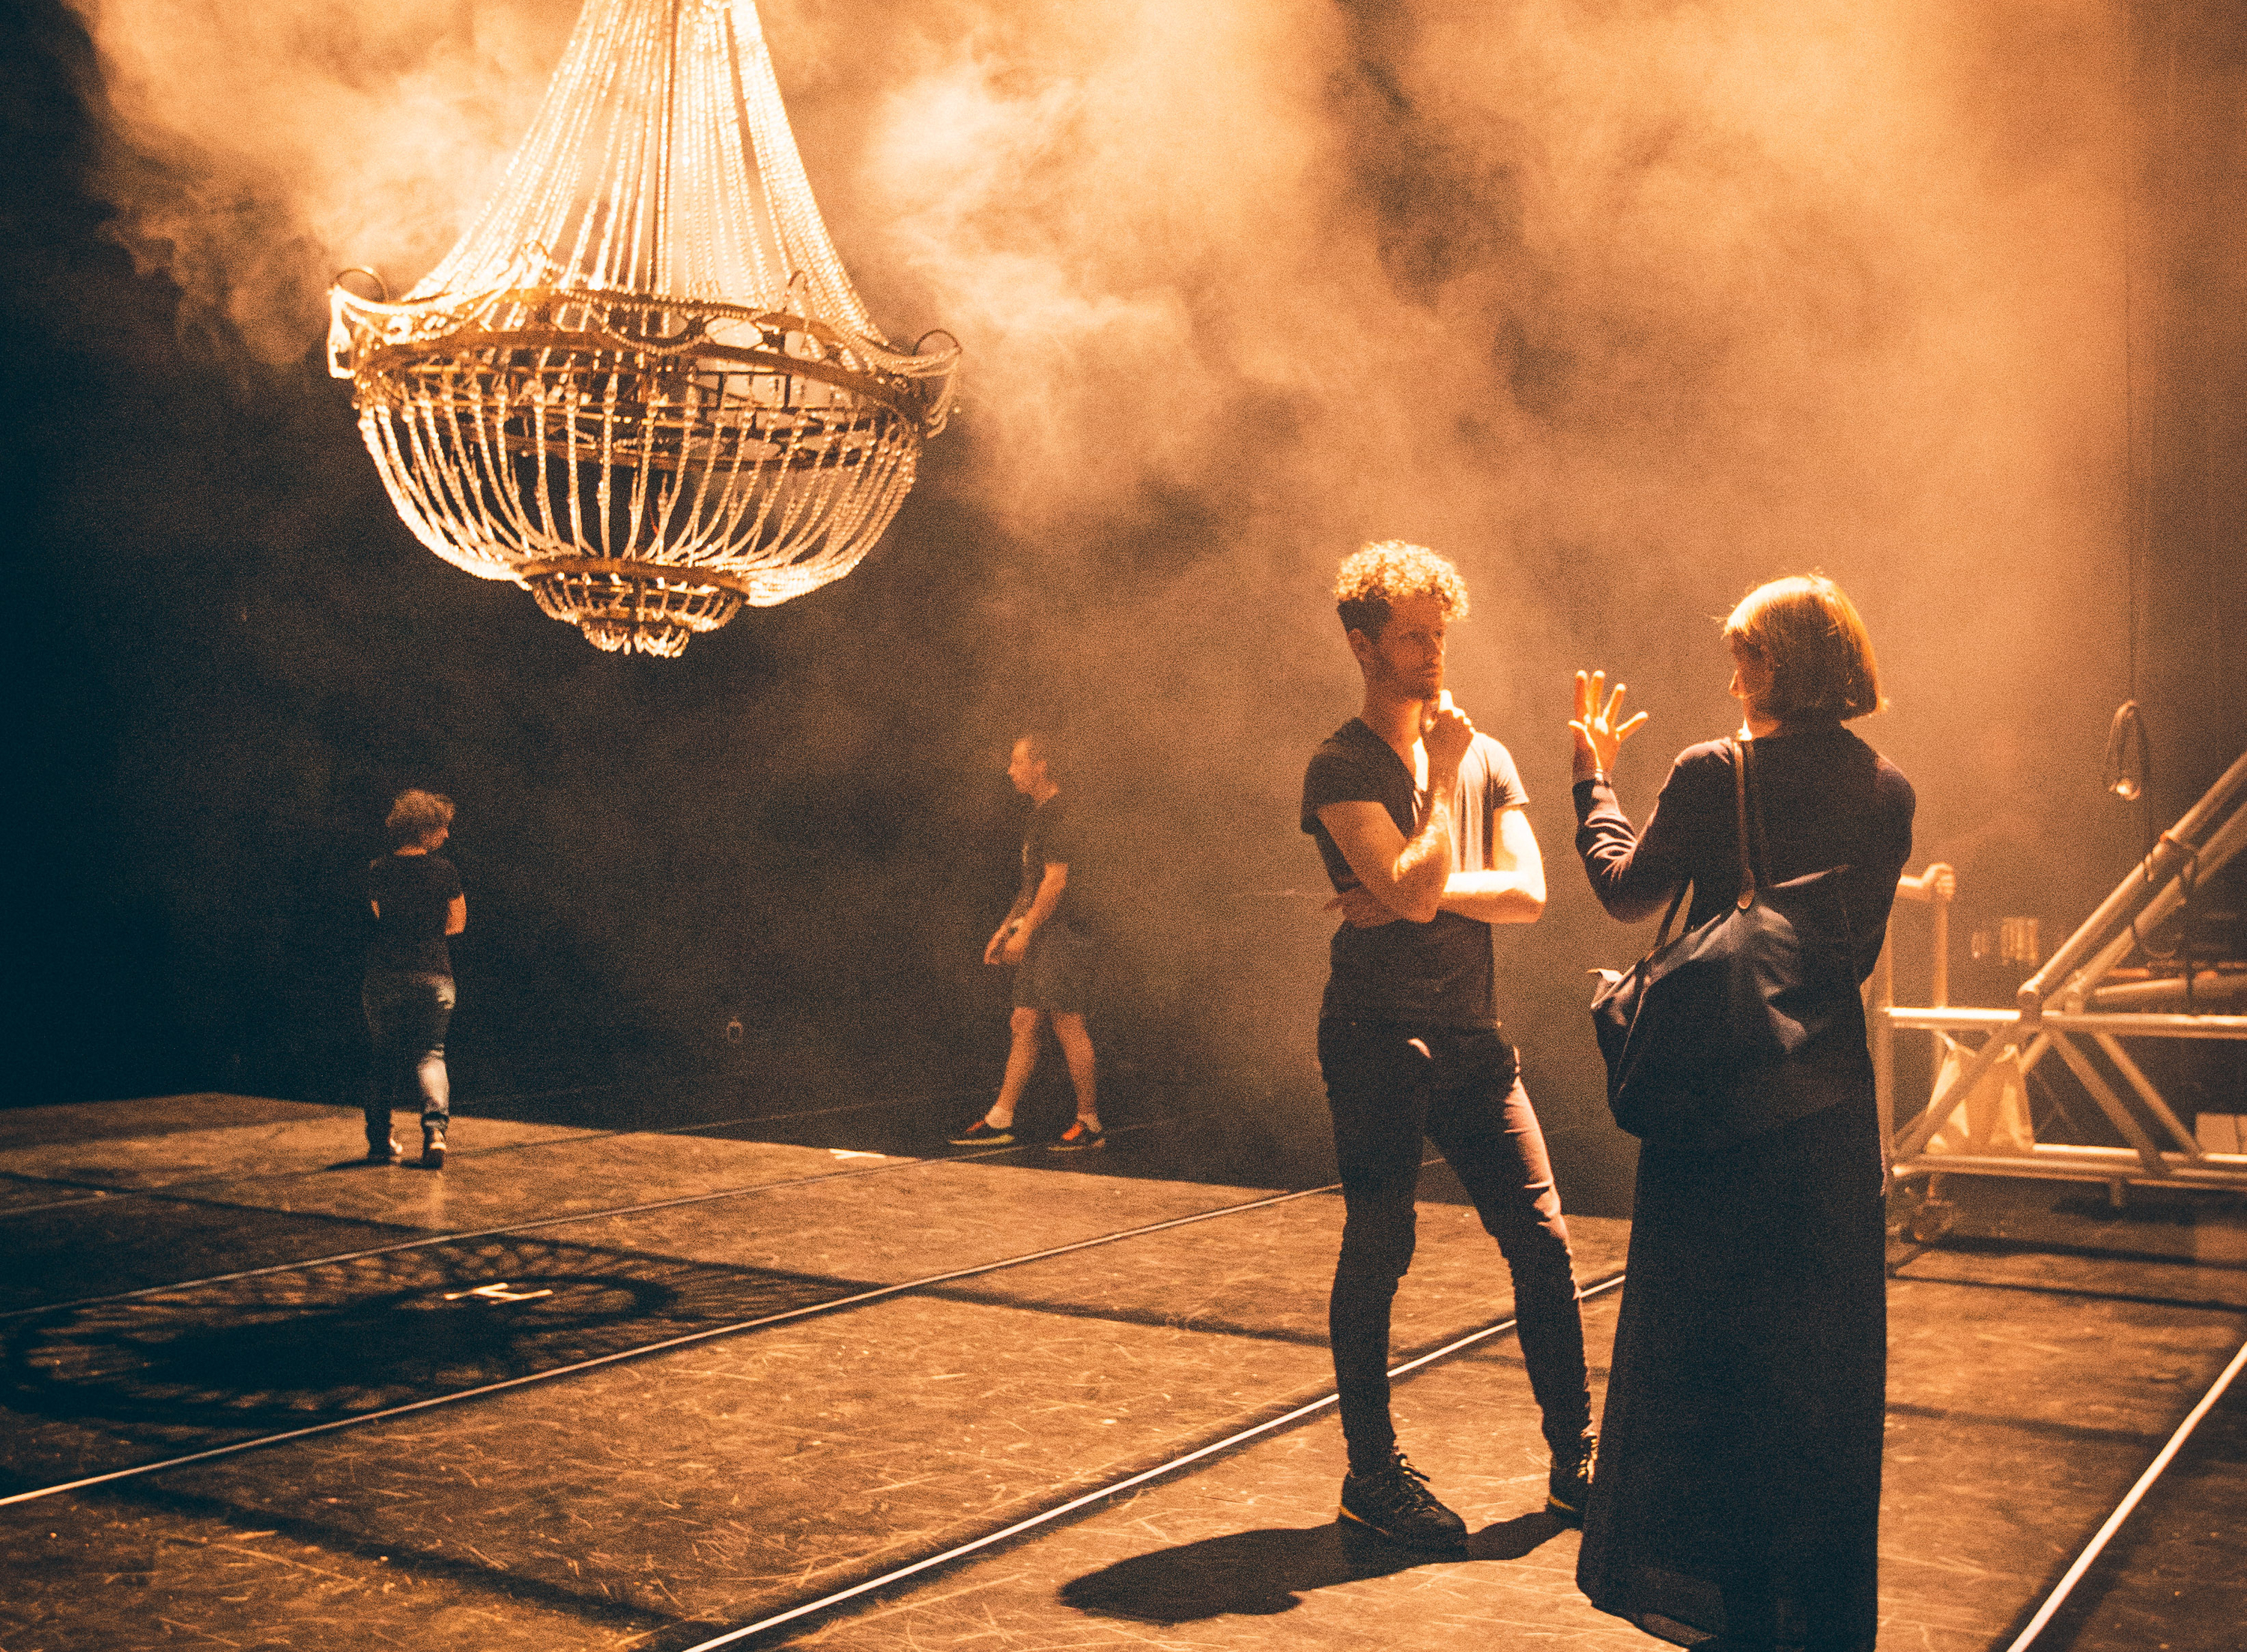 Behind the Lens: a glimpse backstage at the Edinburgh International Festival